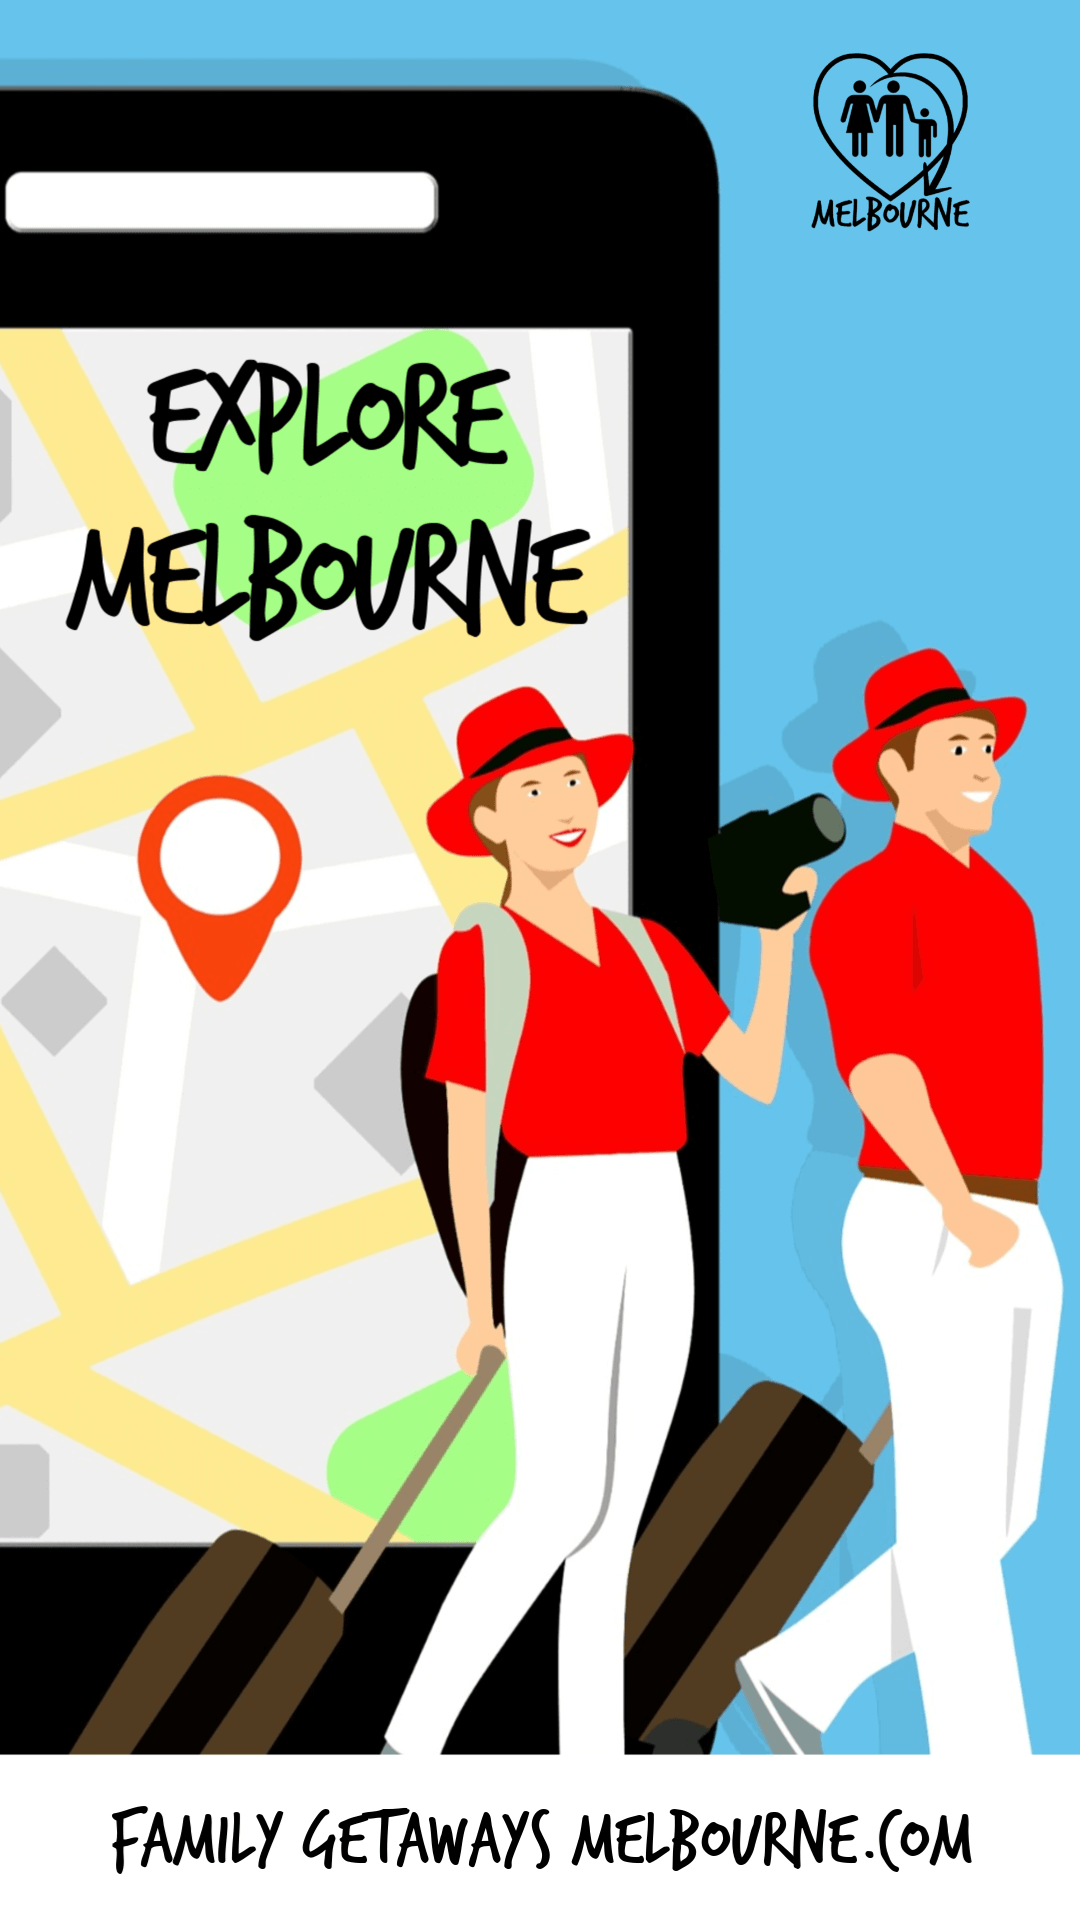 Explore Melbourne like a tourist